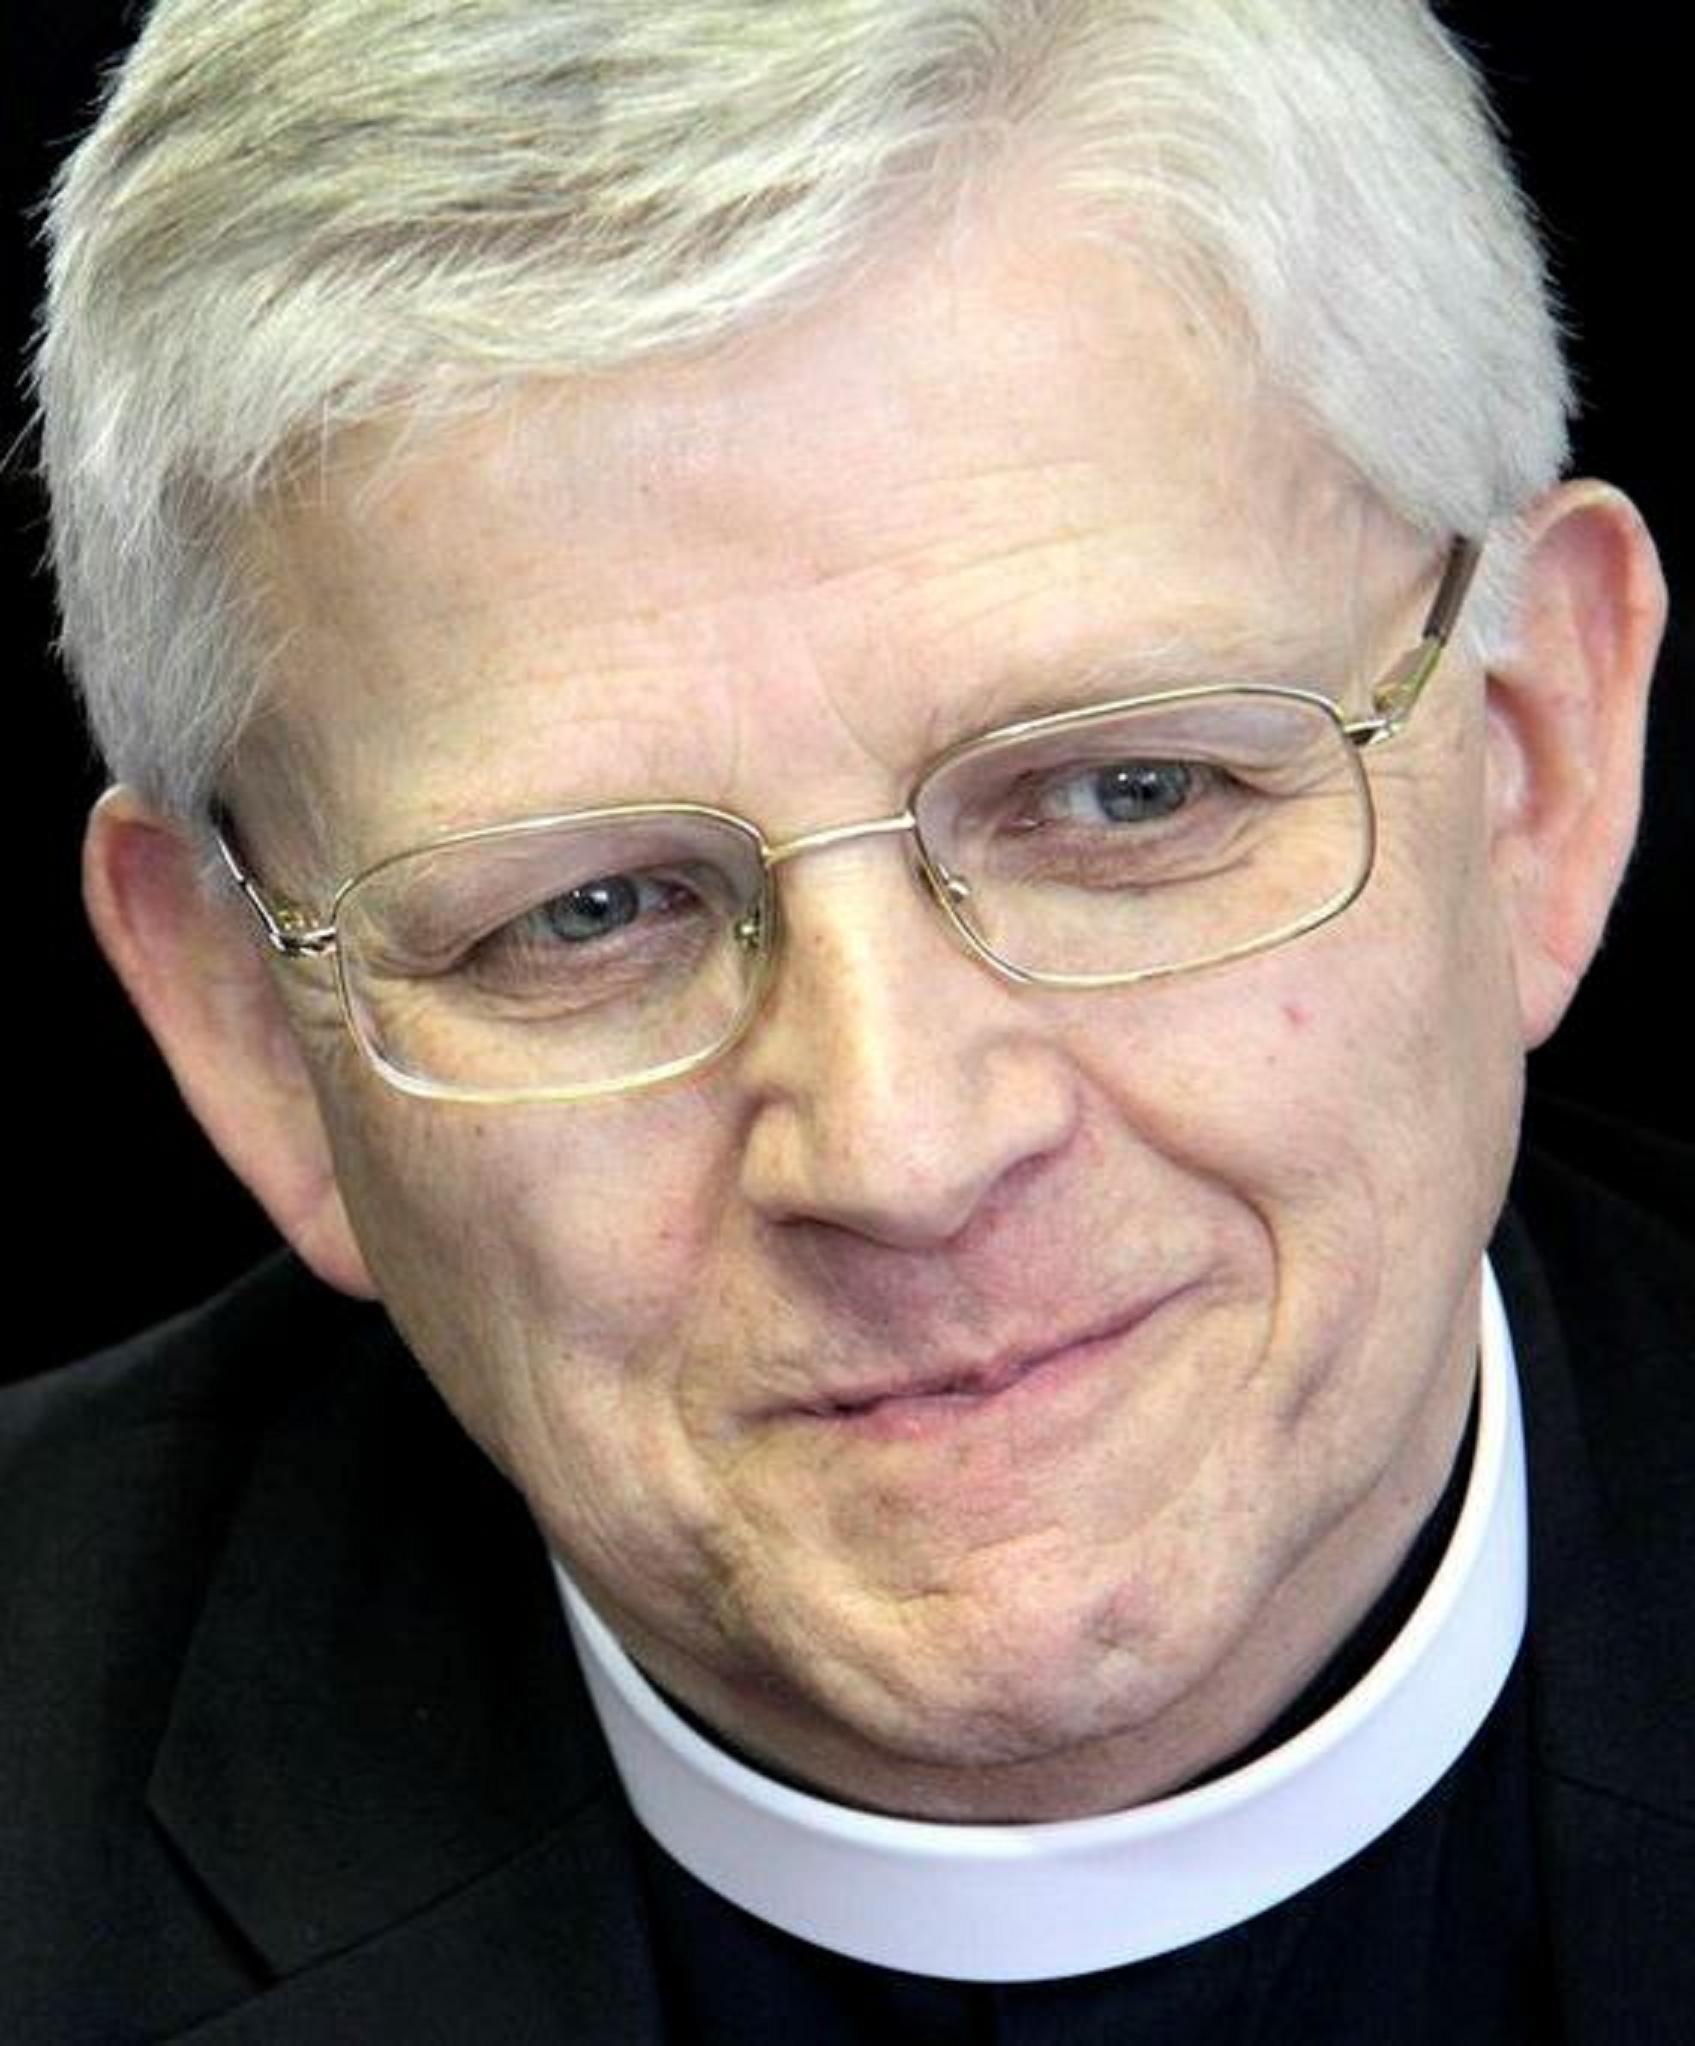 Bishop of Blackburn Julian Henderson